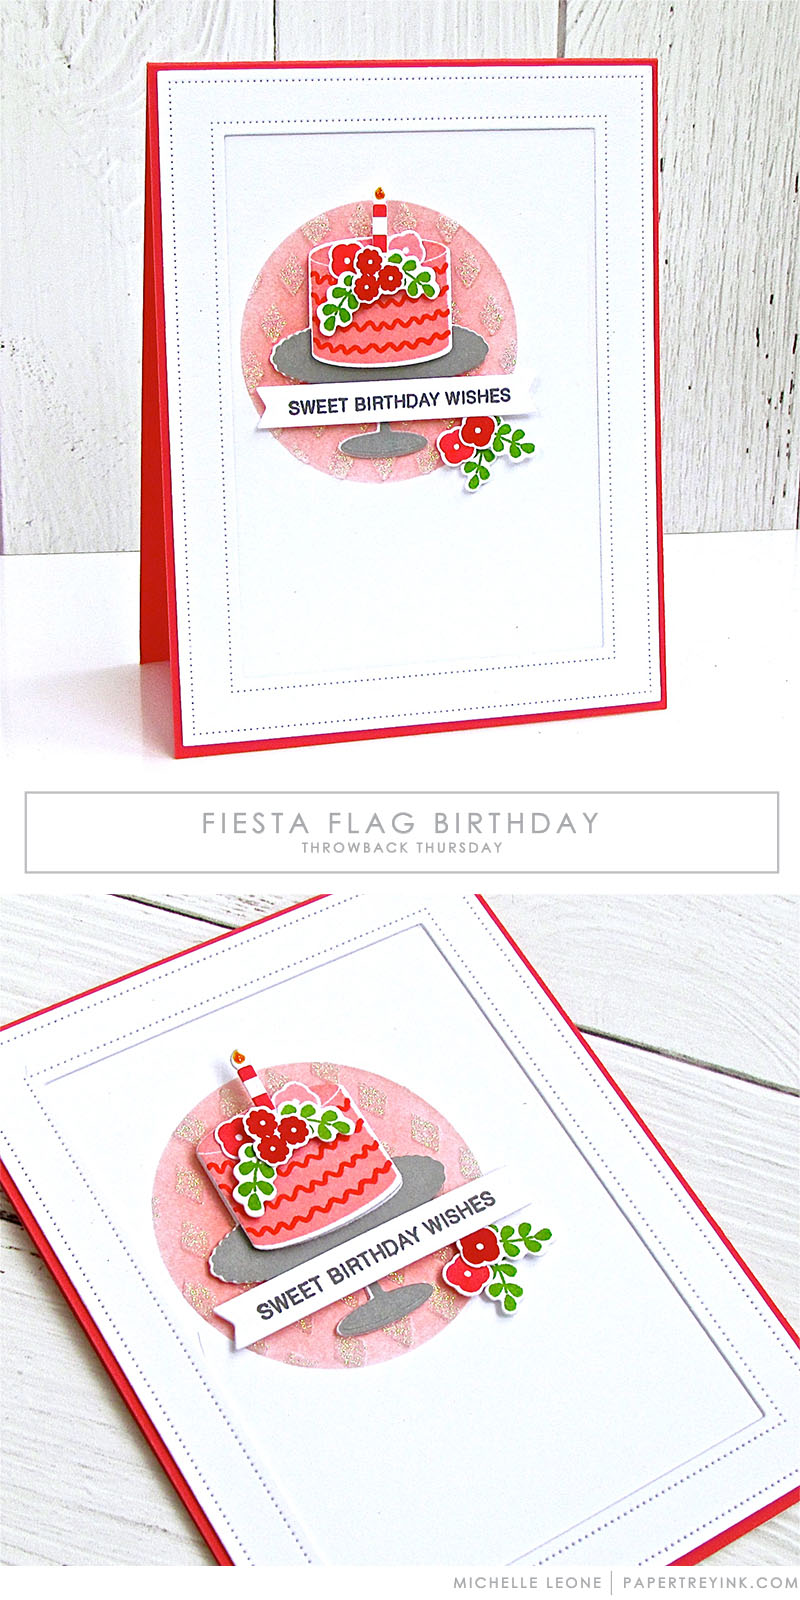 Throwback Thursday: Fiesta Flag Birthday